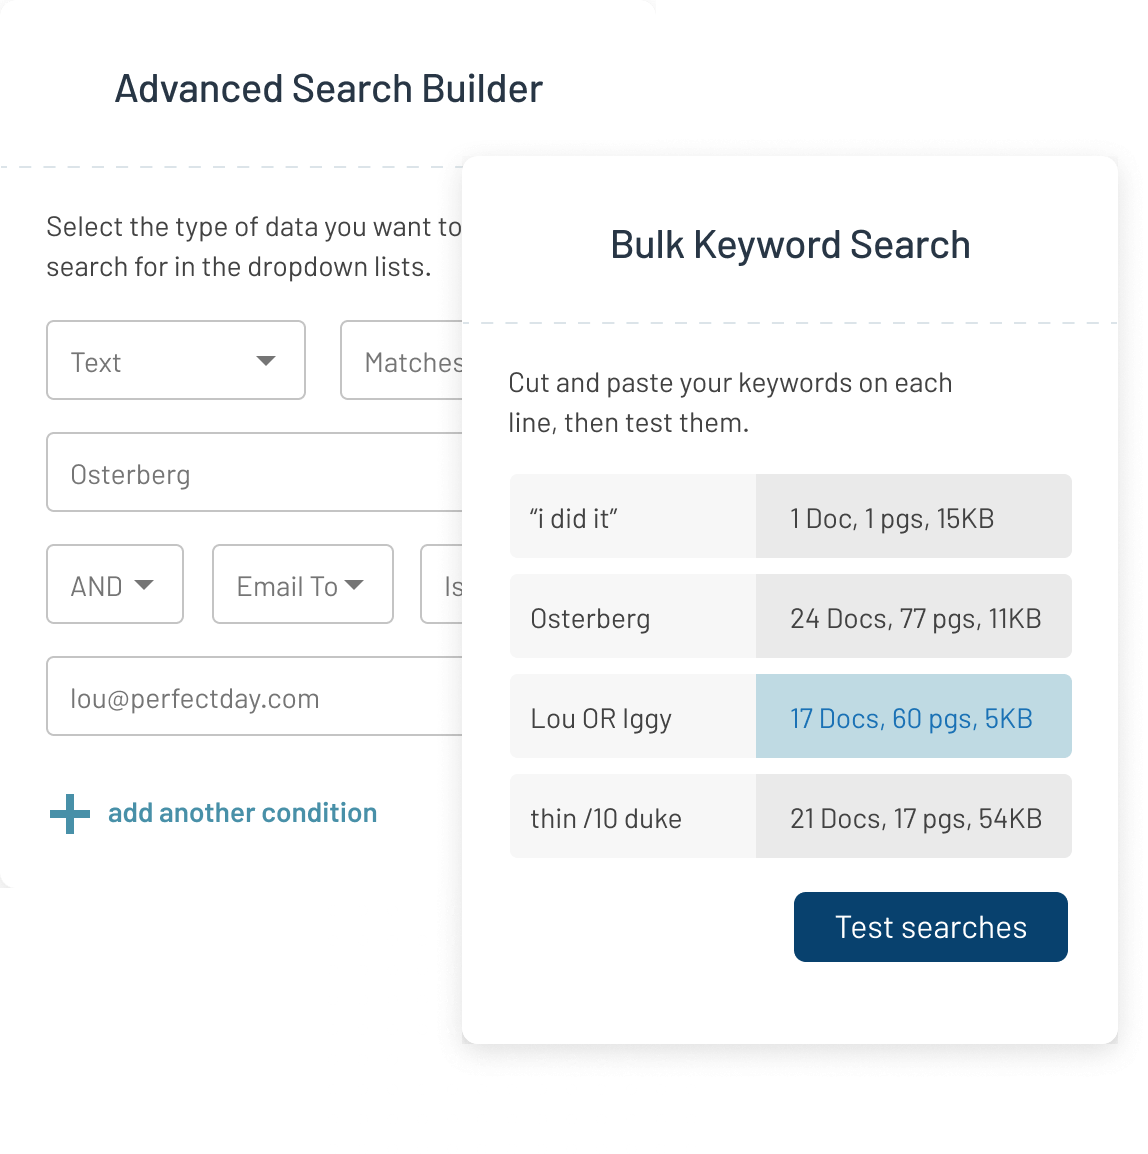 Create simple keyword searches, complex search logic, or test hundreds of searches at once.